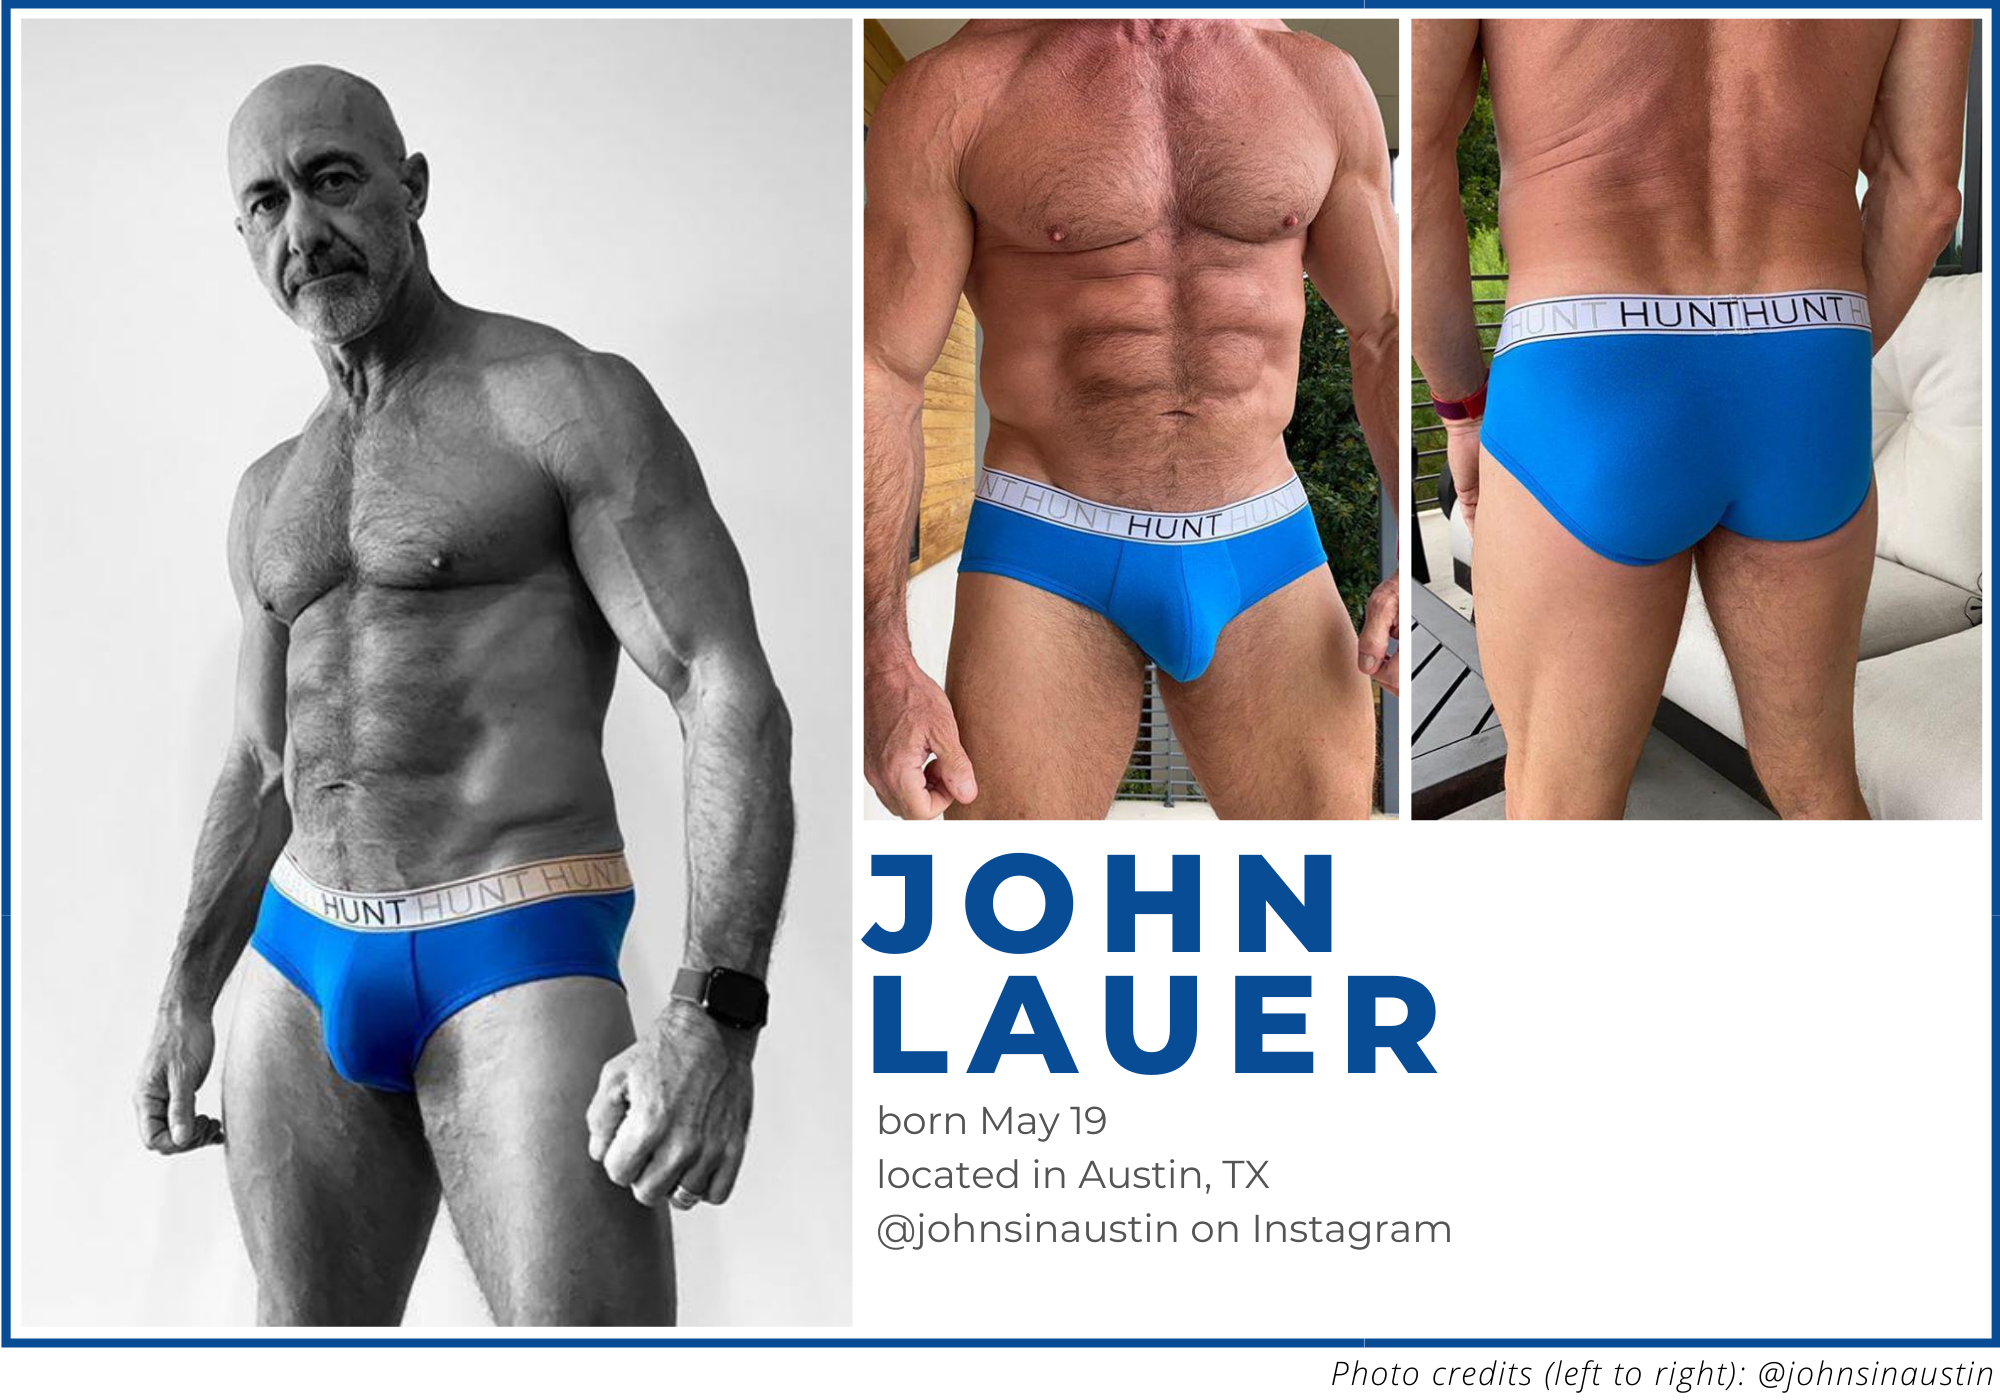 John Lauer, Instagram johnsinaustin, interview with male underwear model